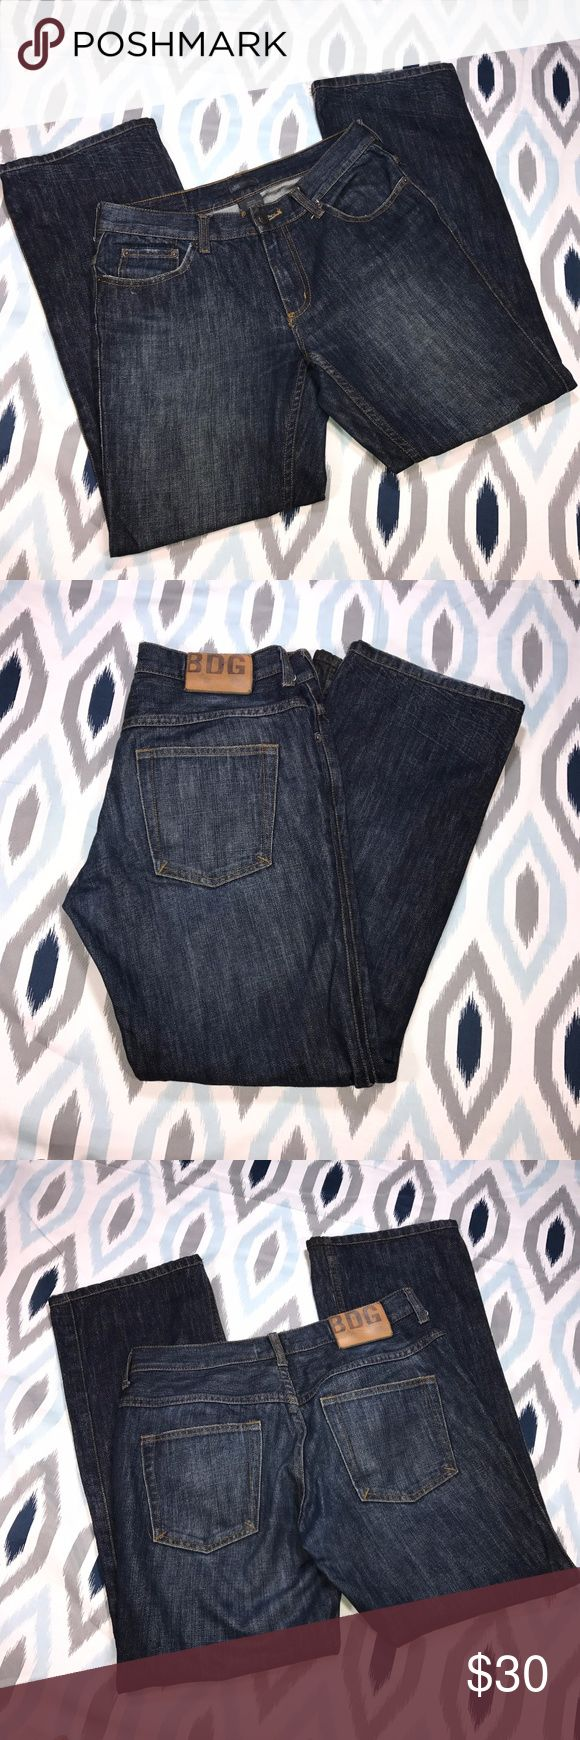 BDG Urban Outfitters Dark Wash Men's Bootcut Jeans * BDG Urban Outfitters Dark Wash Men's Bootcut Denim Jeans * Size 30x30 * Made of 100% cotton.  * Pre-owned, but in excellent used condition. No holes, stains or pilling.  * Measurements: Waist laying flat is 15 1/2 inches. Length is 38 inches. Inseam is 29 1/2 inches. Rise is 9 inches. Urban Outfitters Jeans Bootcut